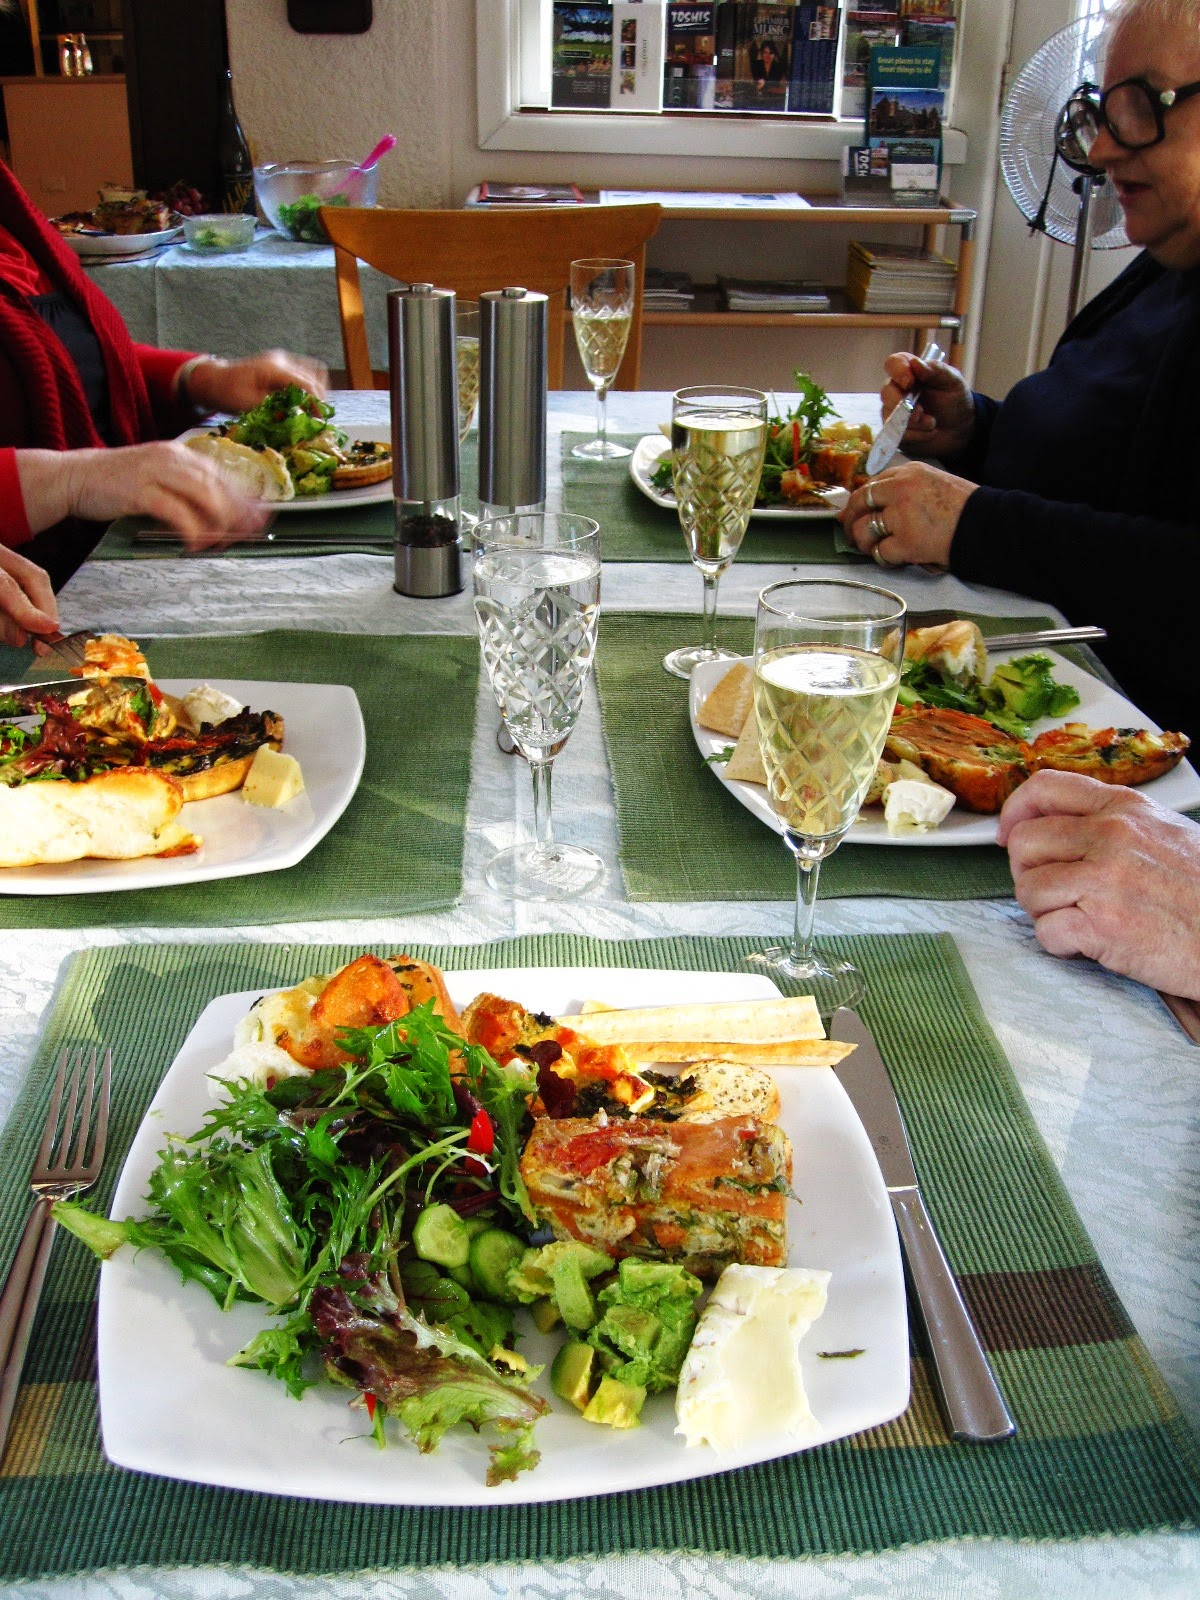 Table with five people eating lunch with glasses of sparkling wine.